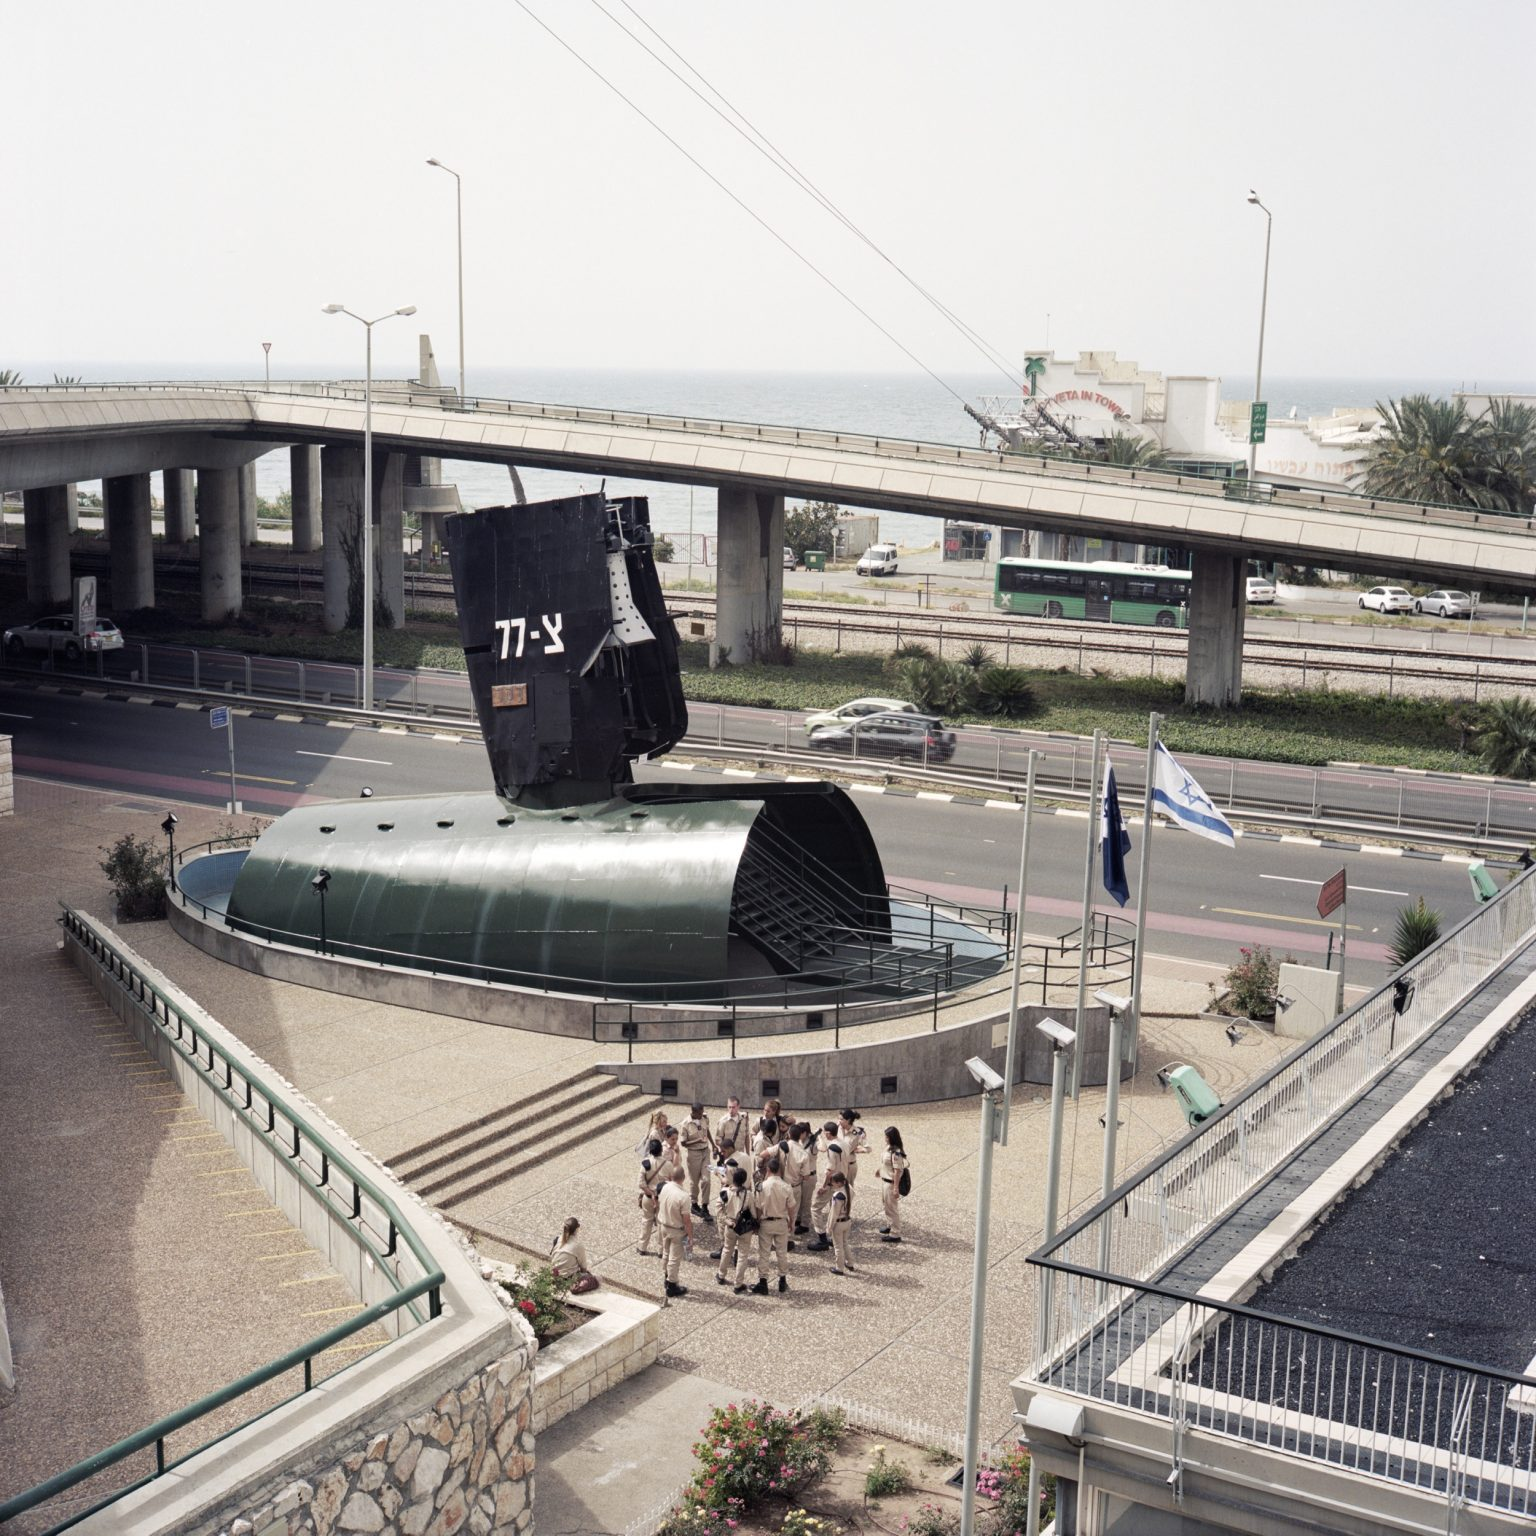 Haifa, Israel. A group of soldiers visiting the Navy museum, standing in front of the recovered conning tower of Dakar submarine, which sunk in 1968 between Cyprus and Crete.